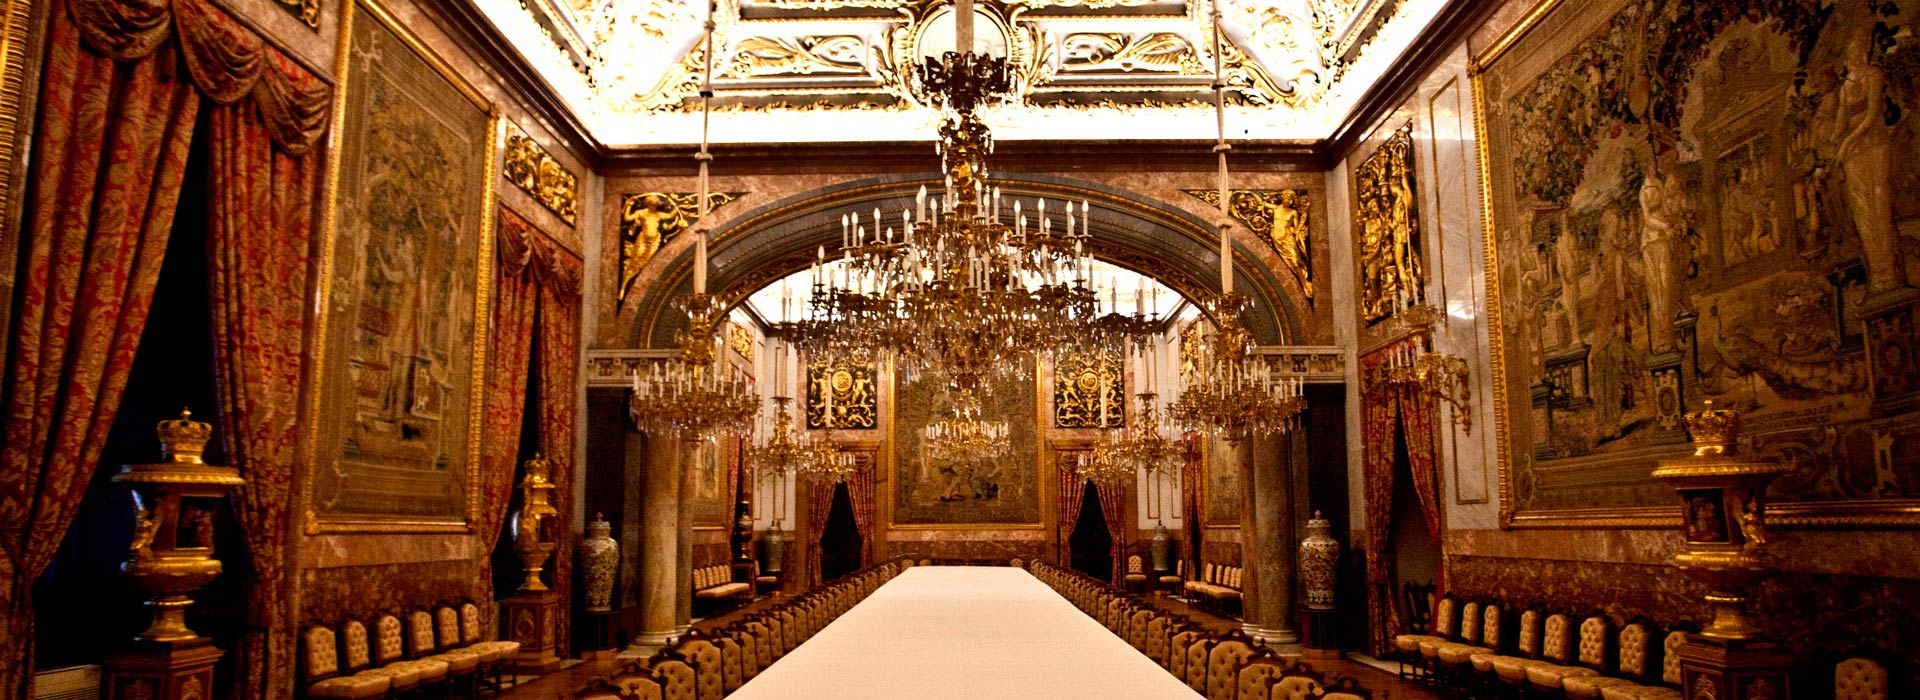 Madrid.Interior de Palacio Real